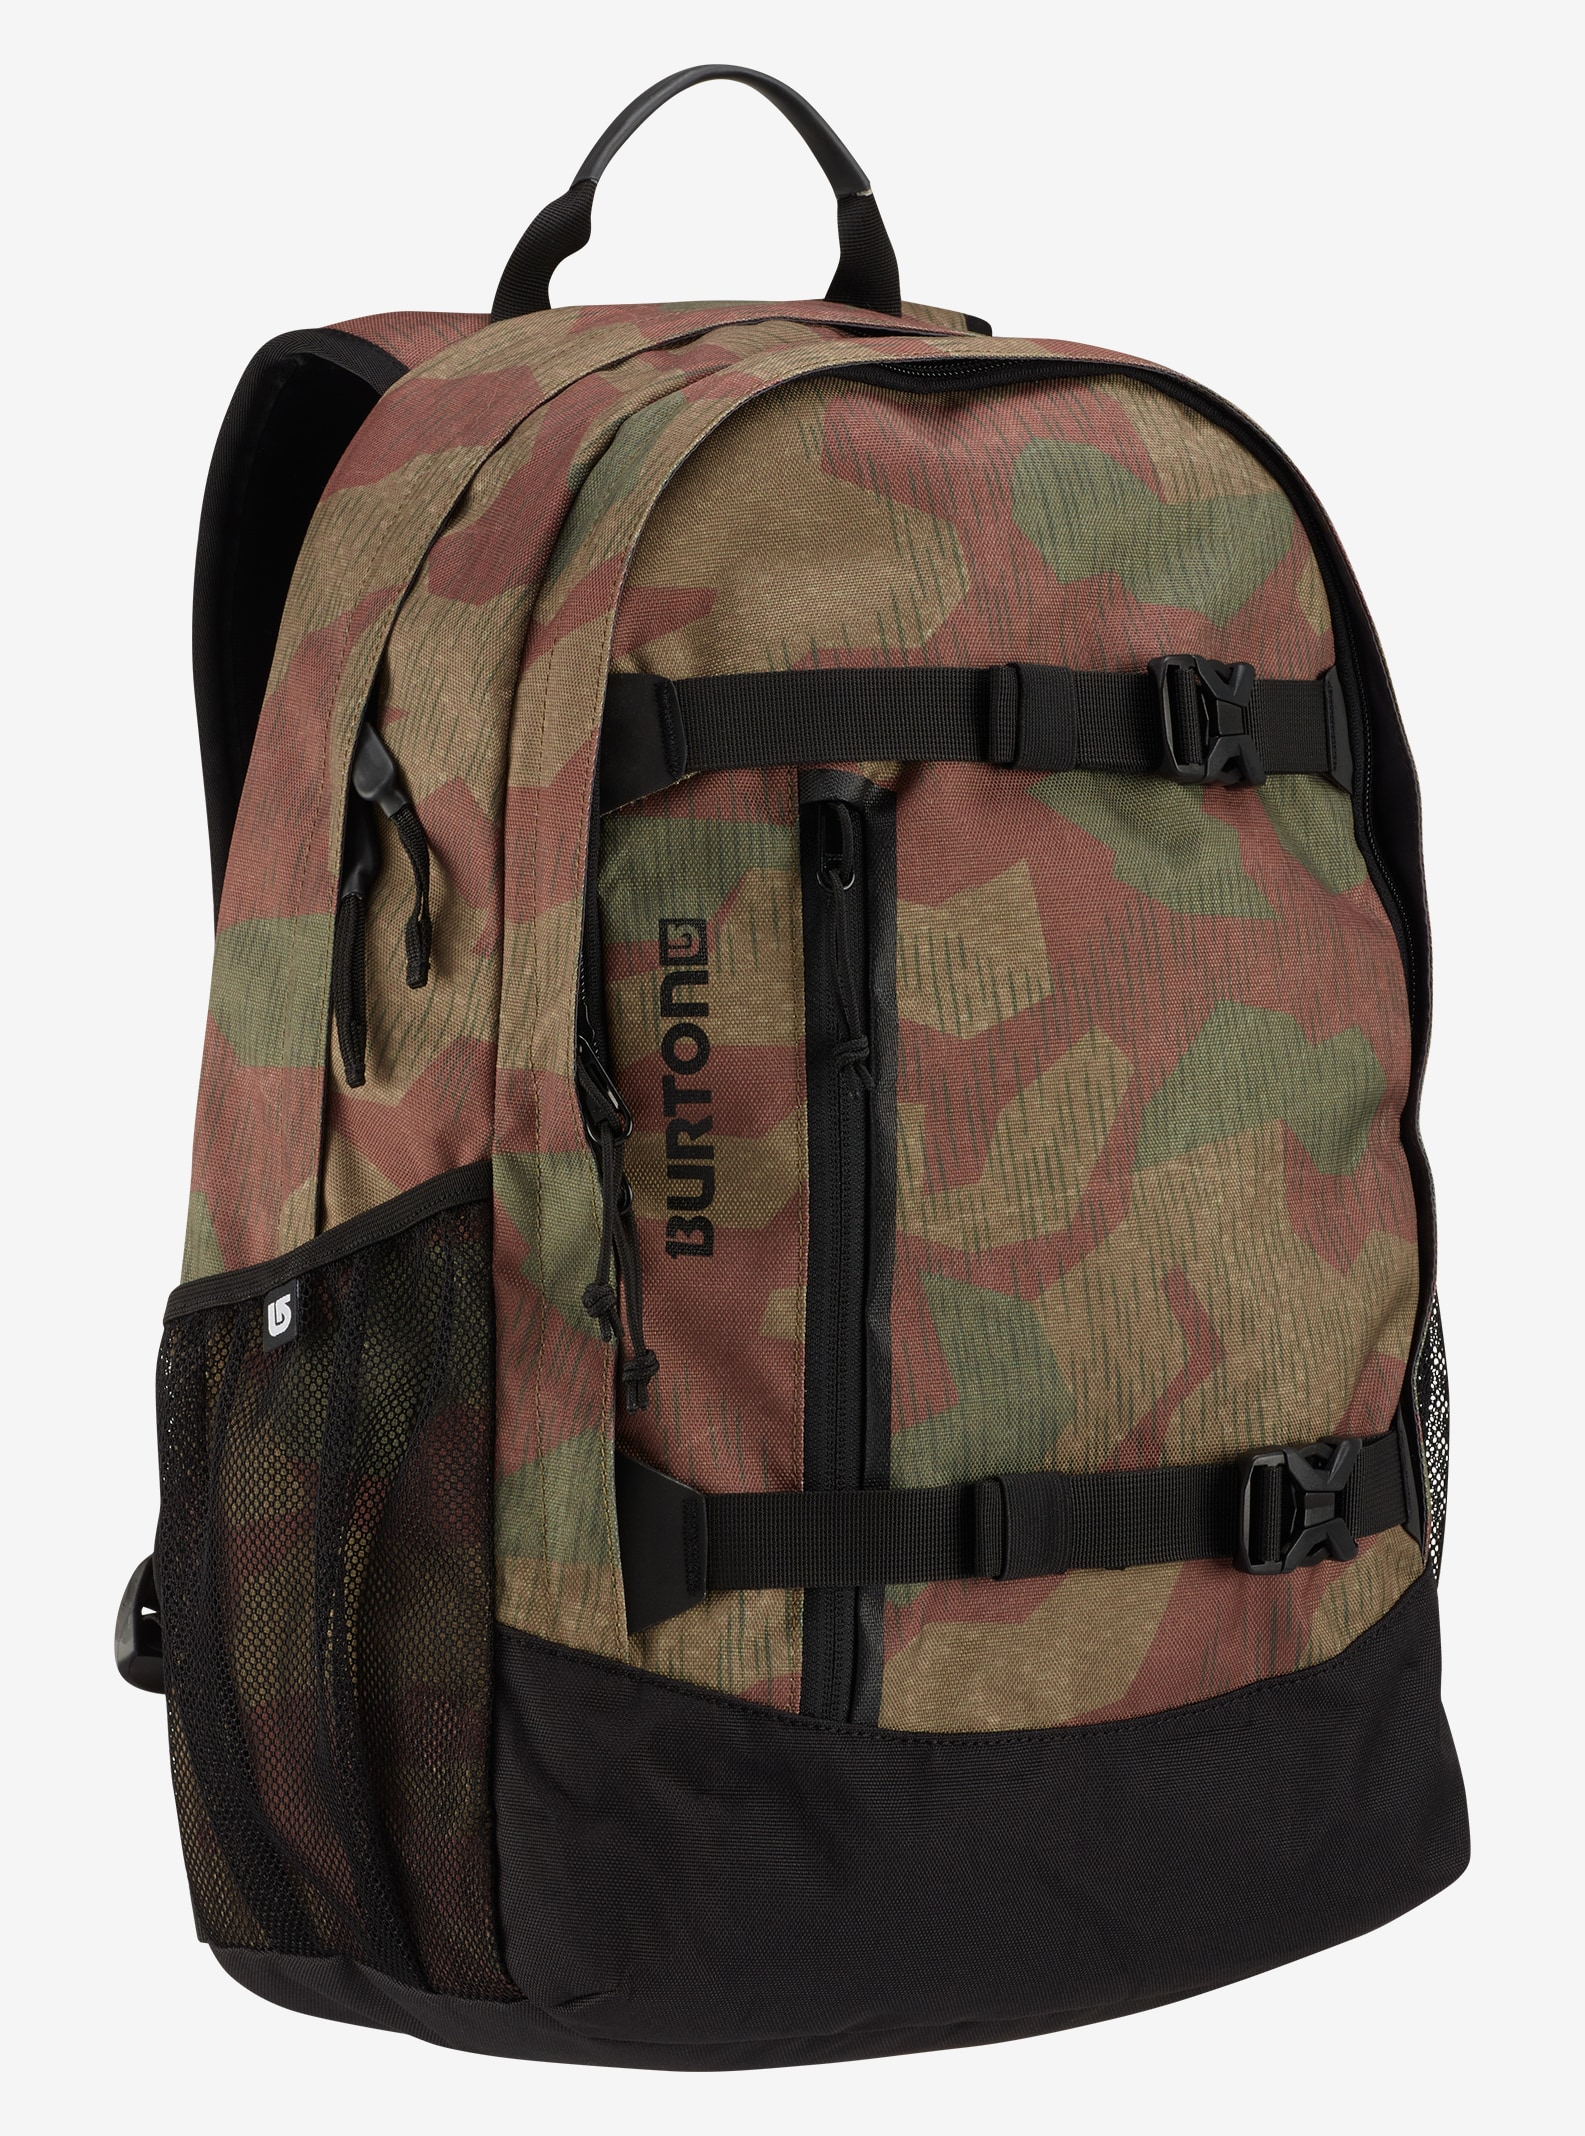 Burton Day Hiker 25L Backpack shown in Splinter Camo Print